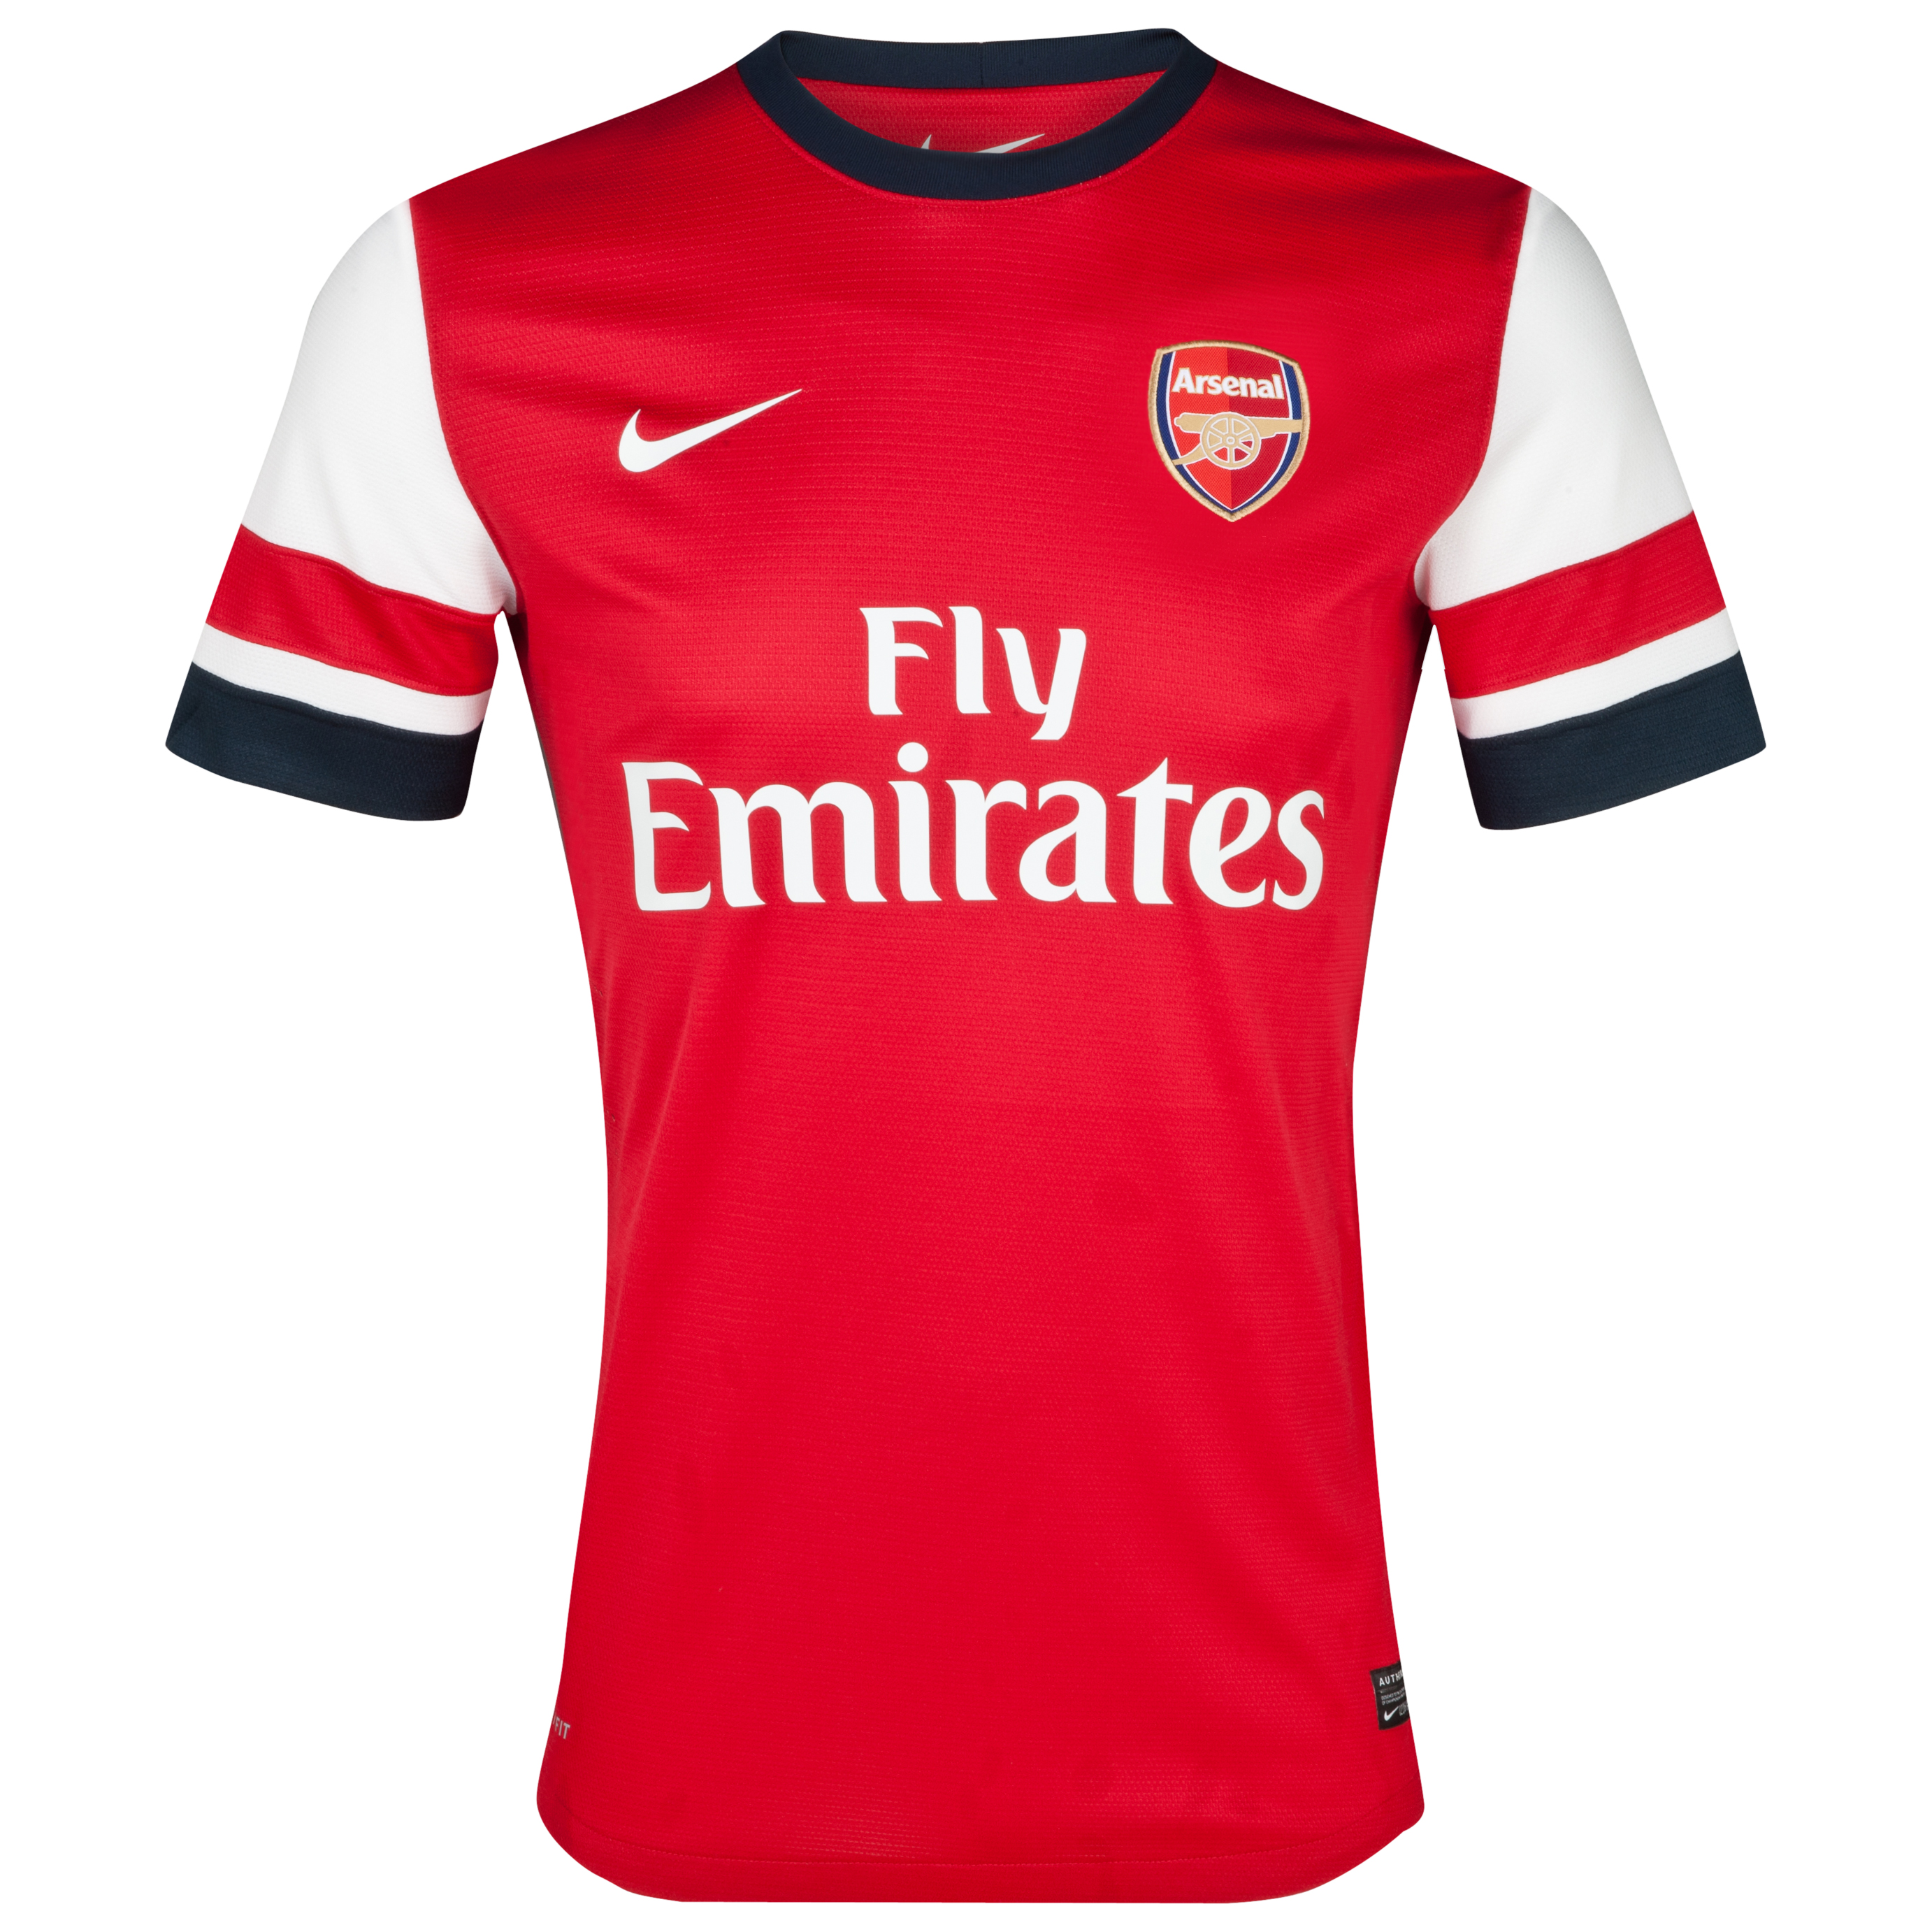 Arsenal Home Shirt 2012/13